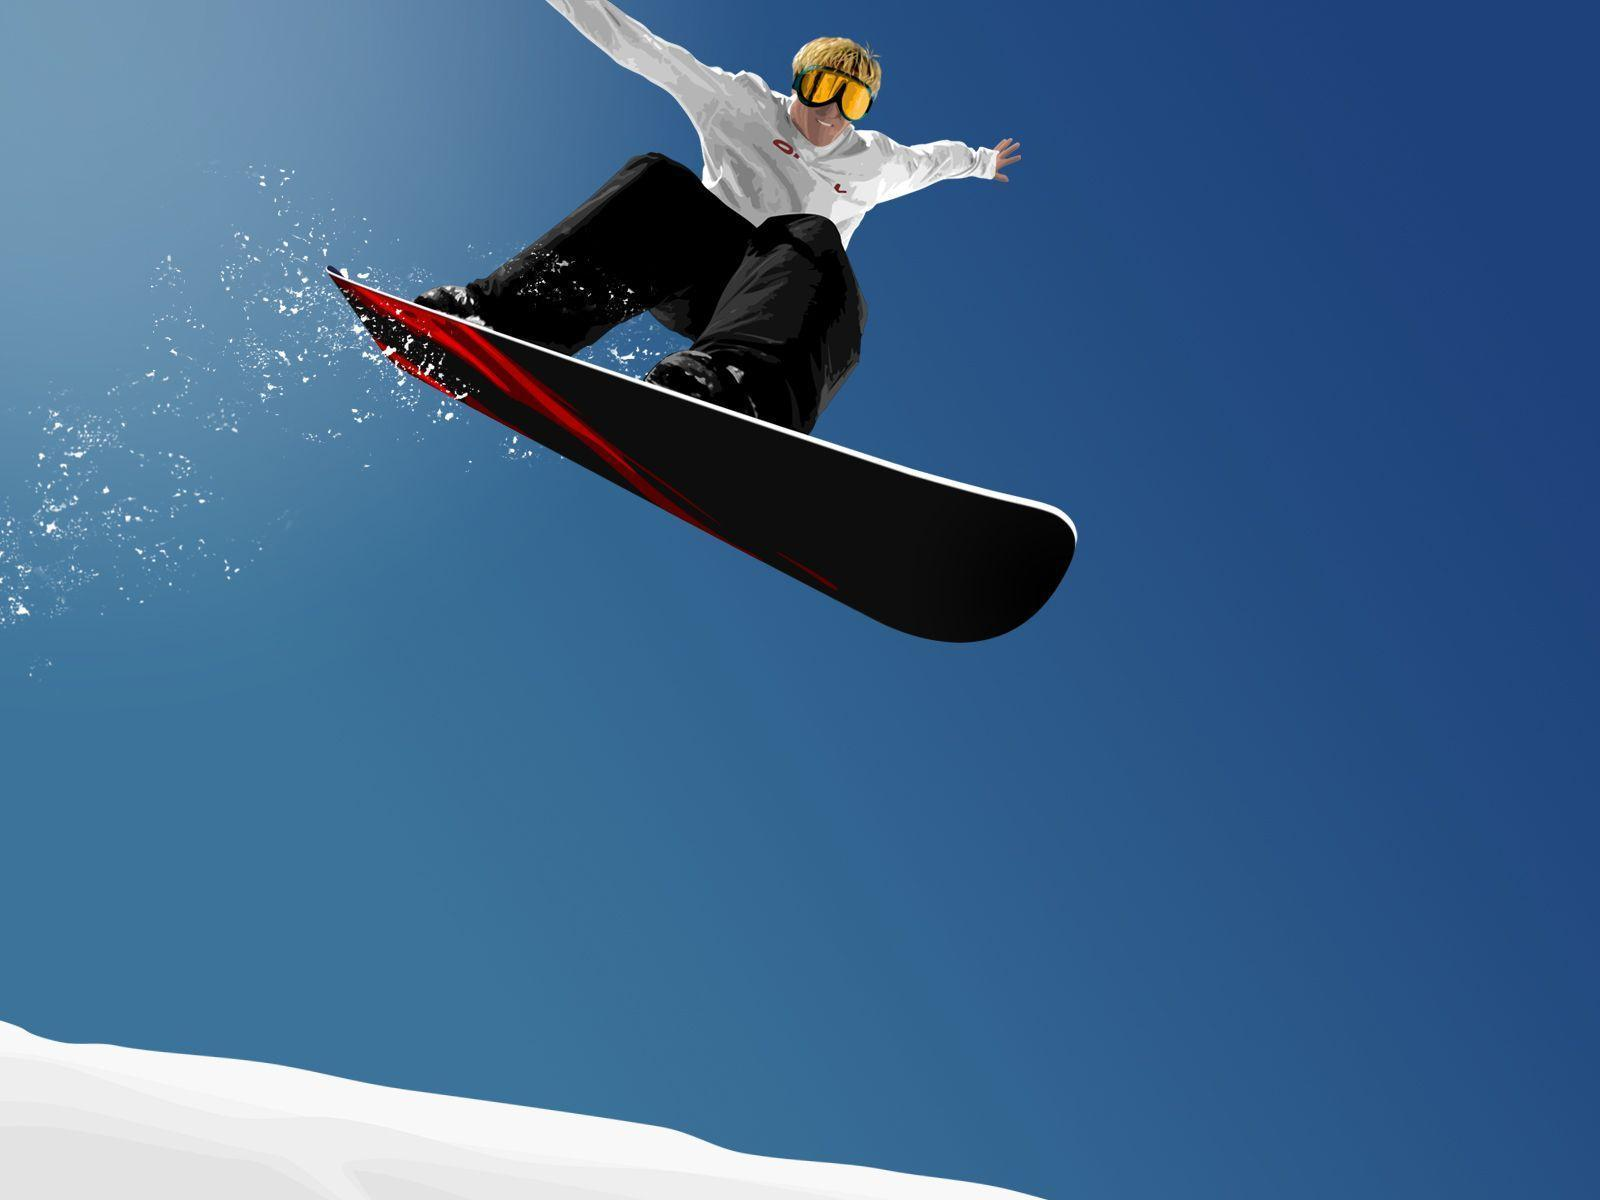 Shaun white snowboarding wallpaper